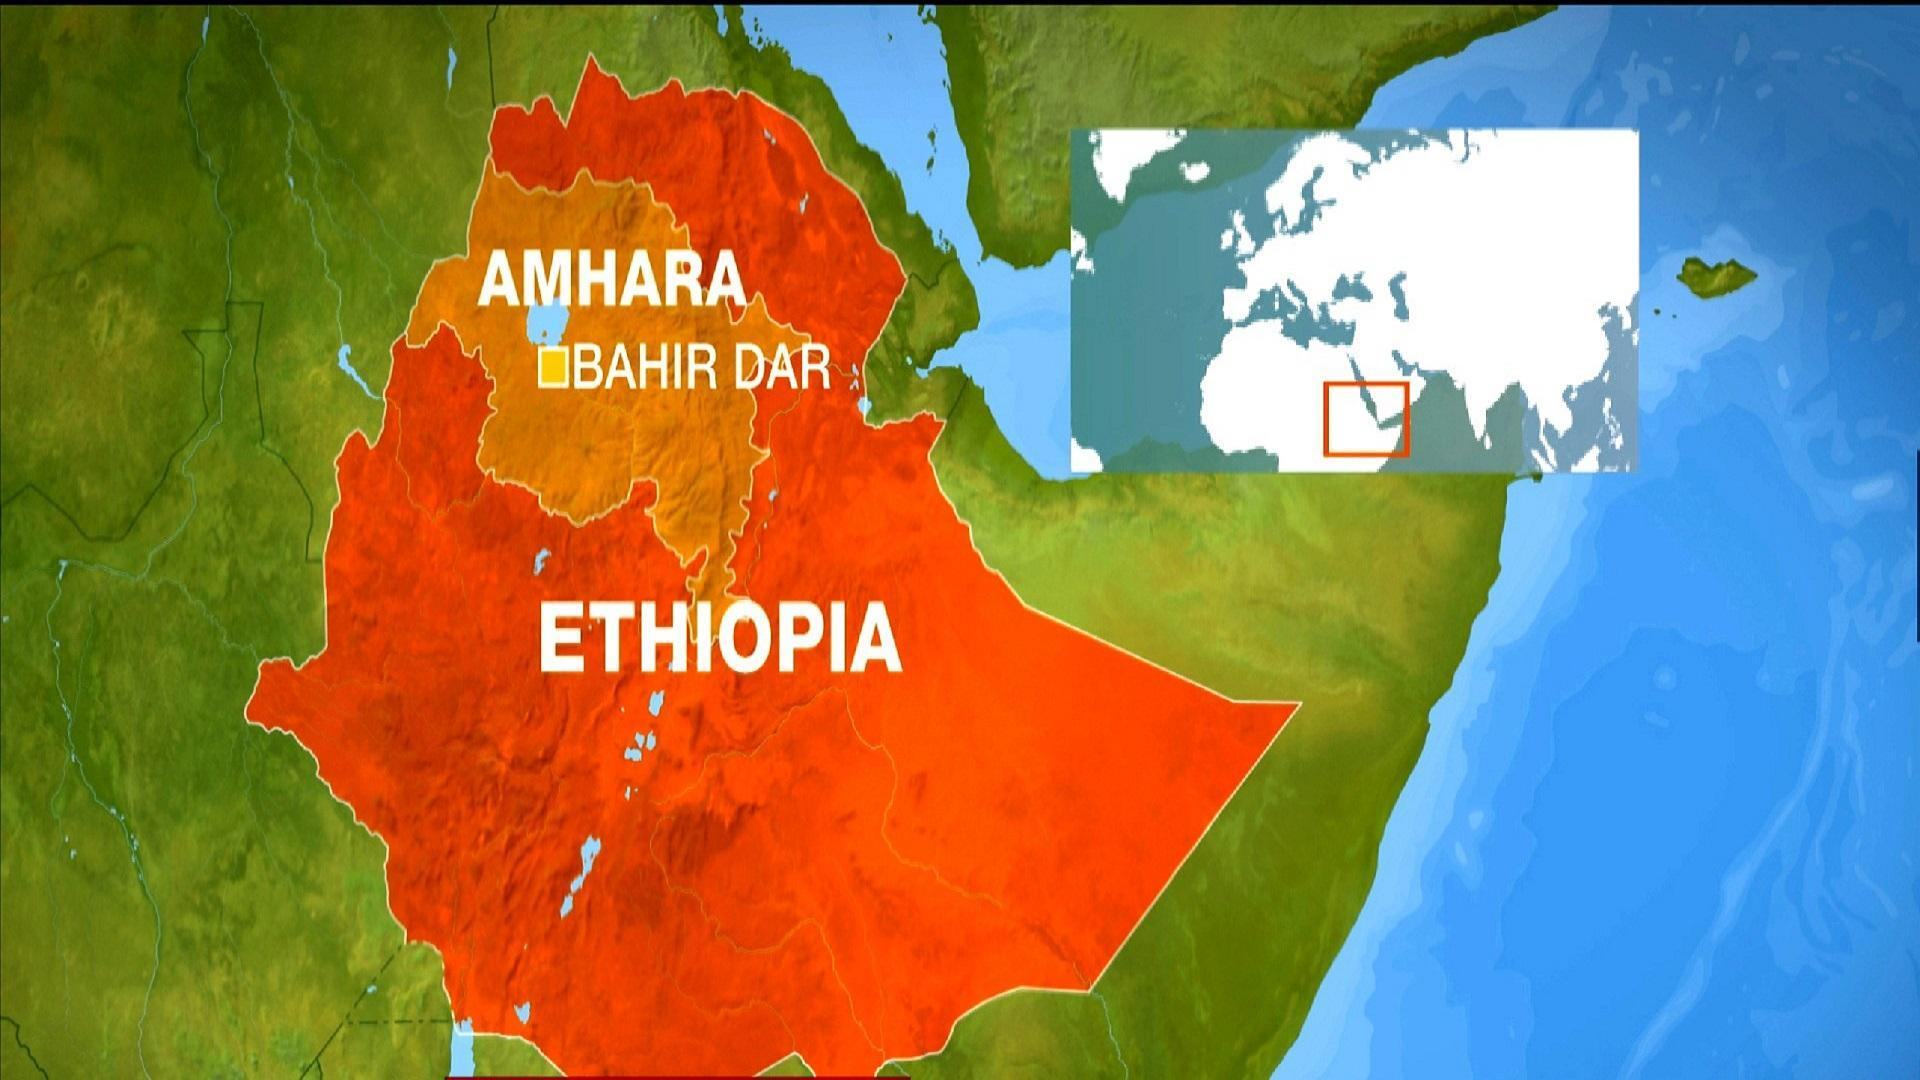 Outrage over Ethiopia's continuing internet blackout